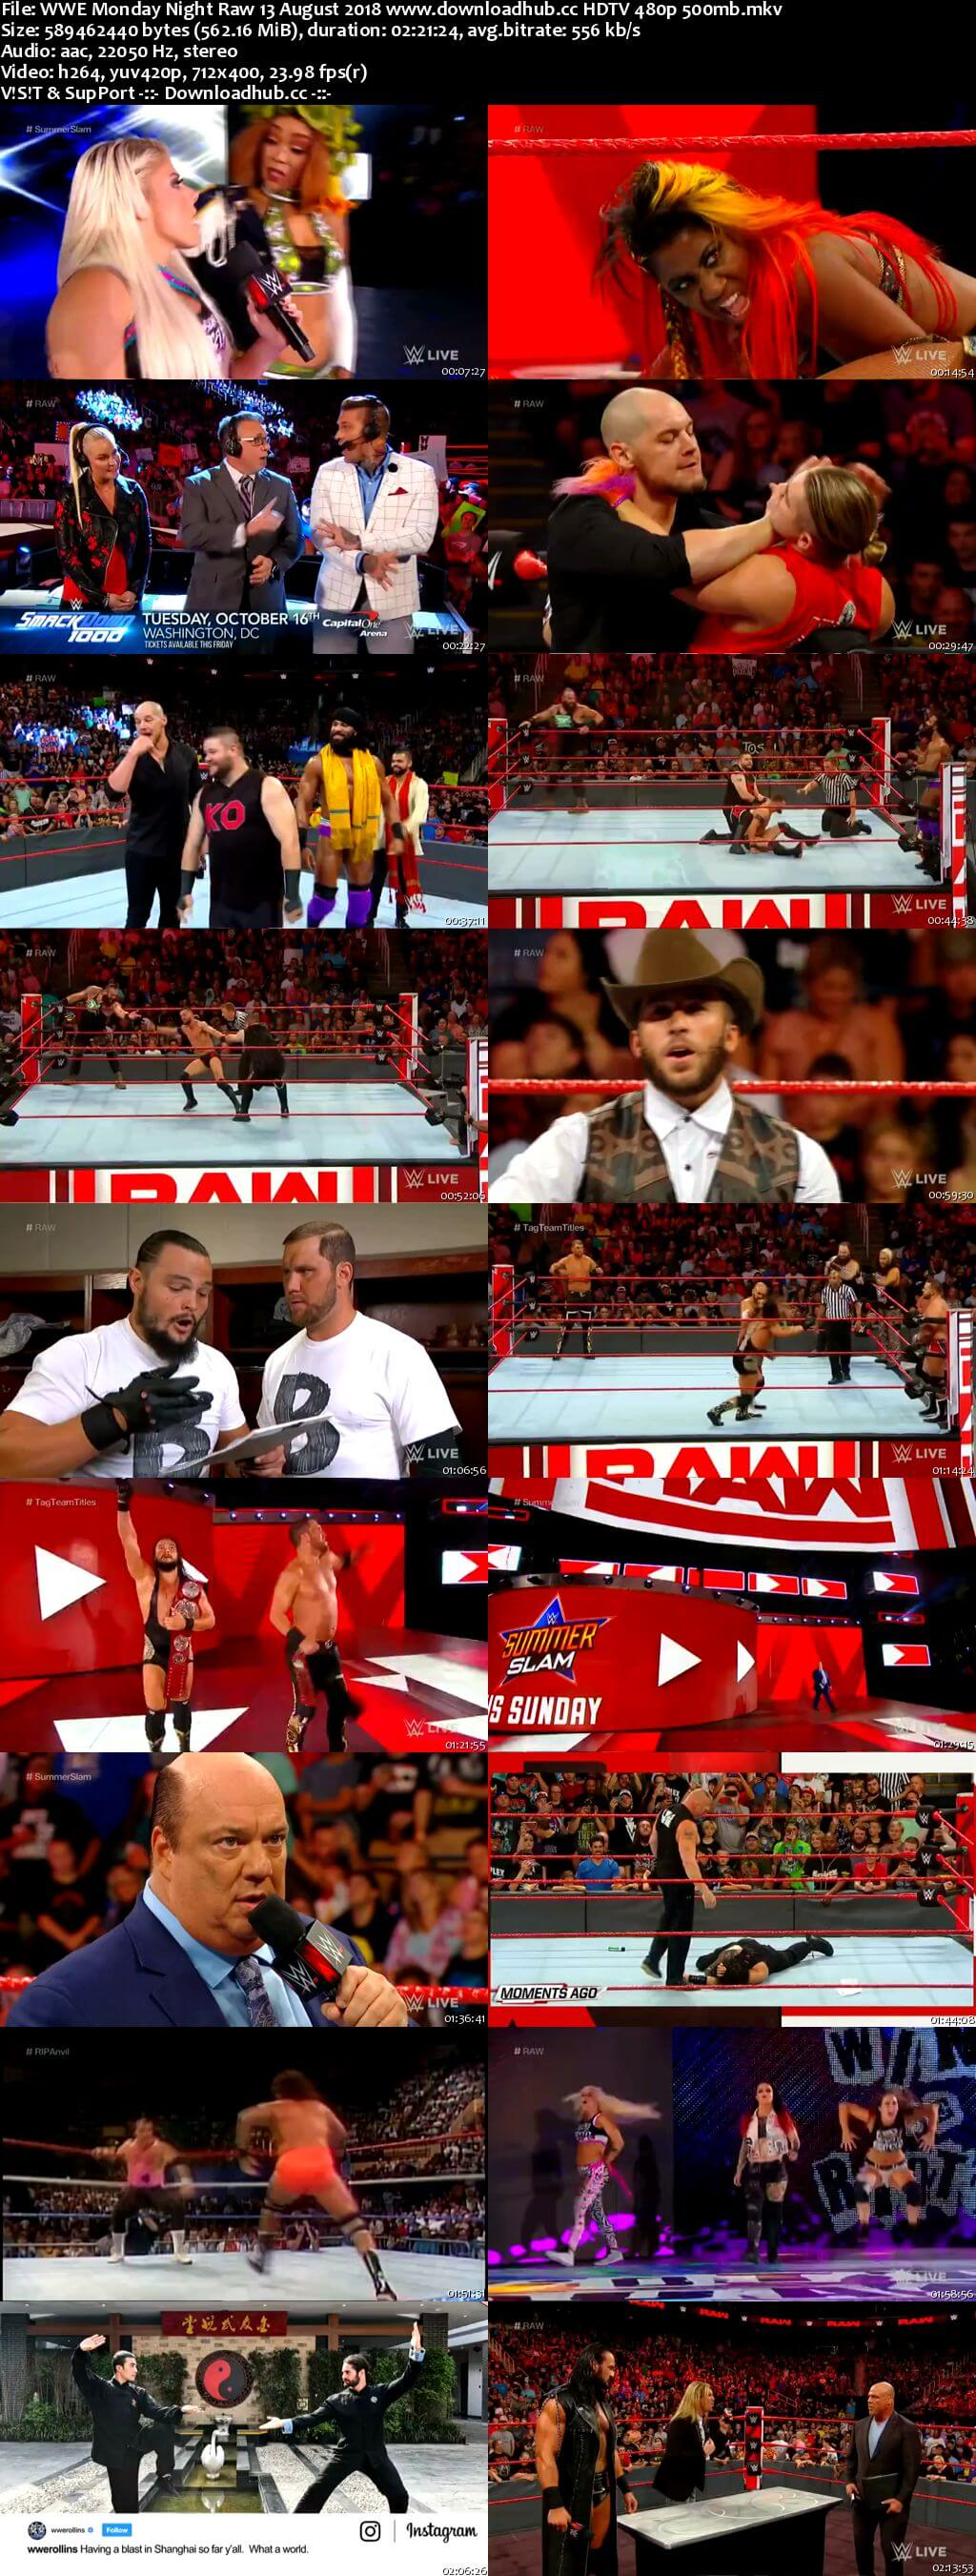 WWE Monday Night Raw 13 August 2018 480p HDTV Download